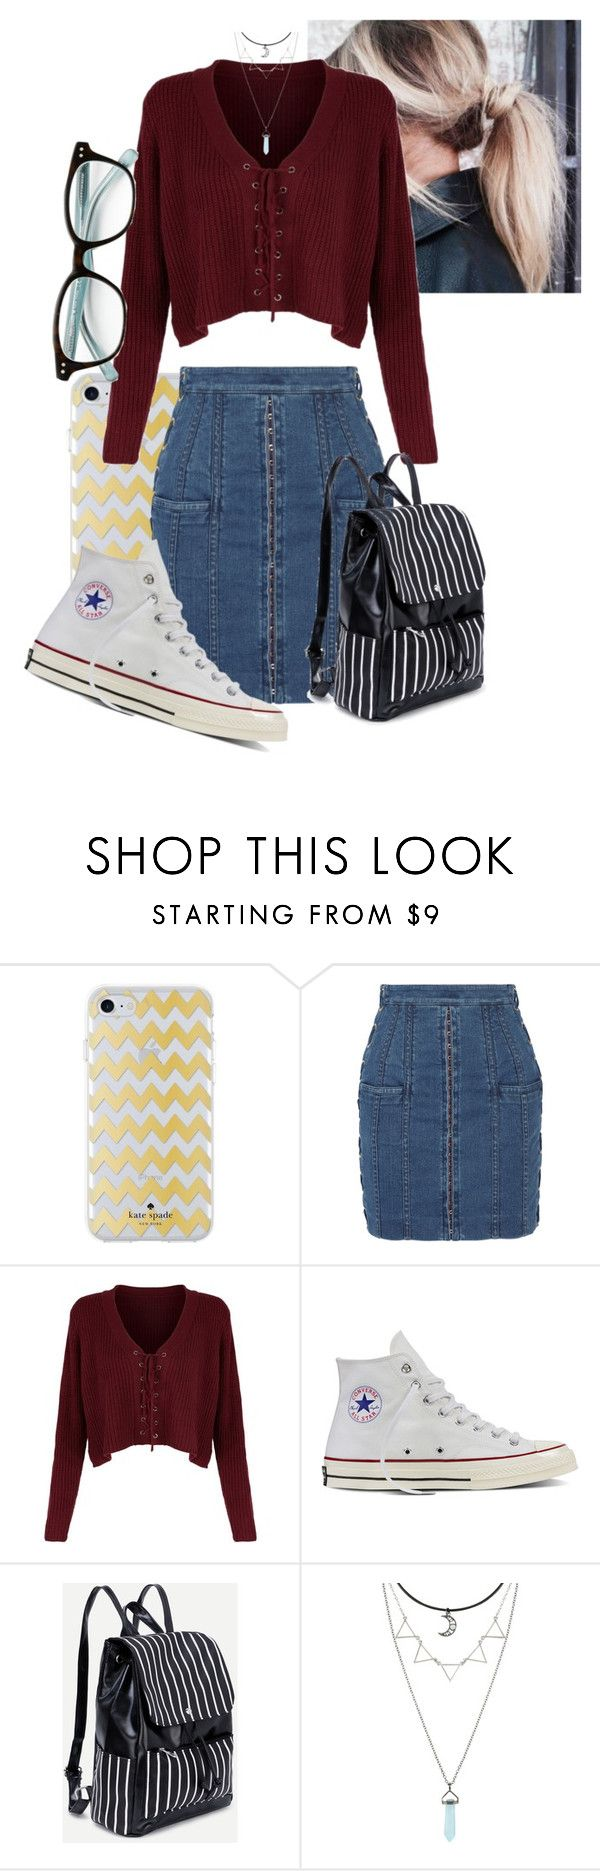 """""""Untitled #144"""" by millanj-fashion on Polyvore featuring Kate Spade, Balmain and Converse"""